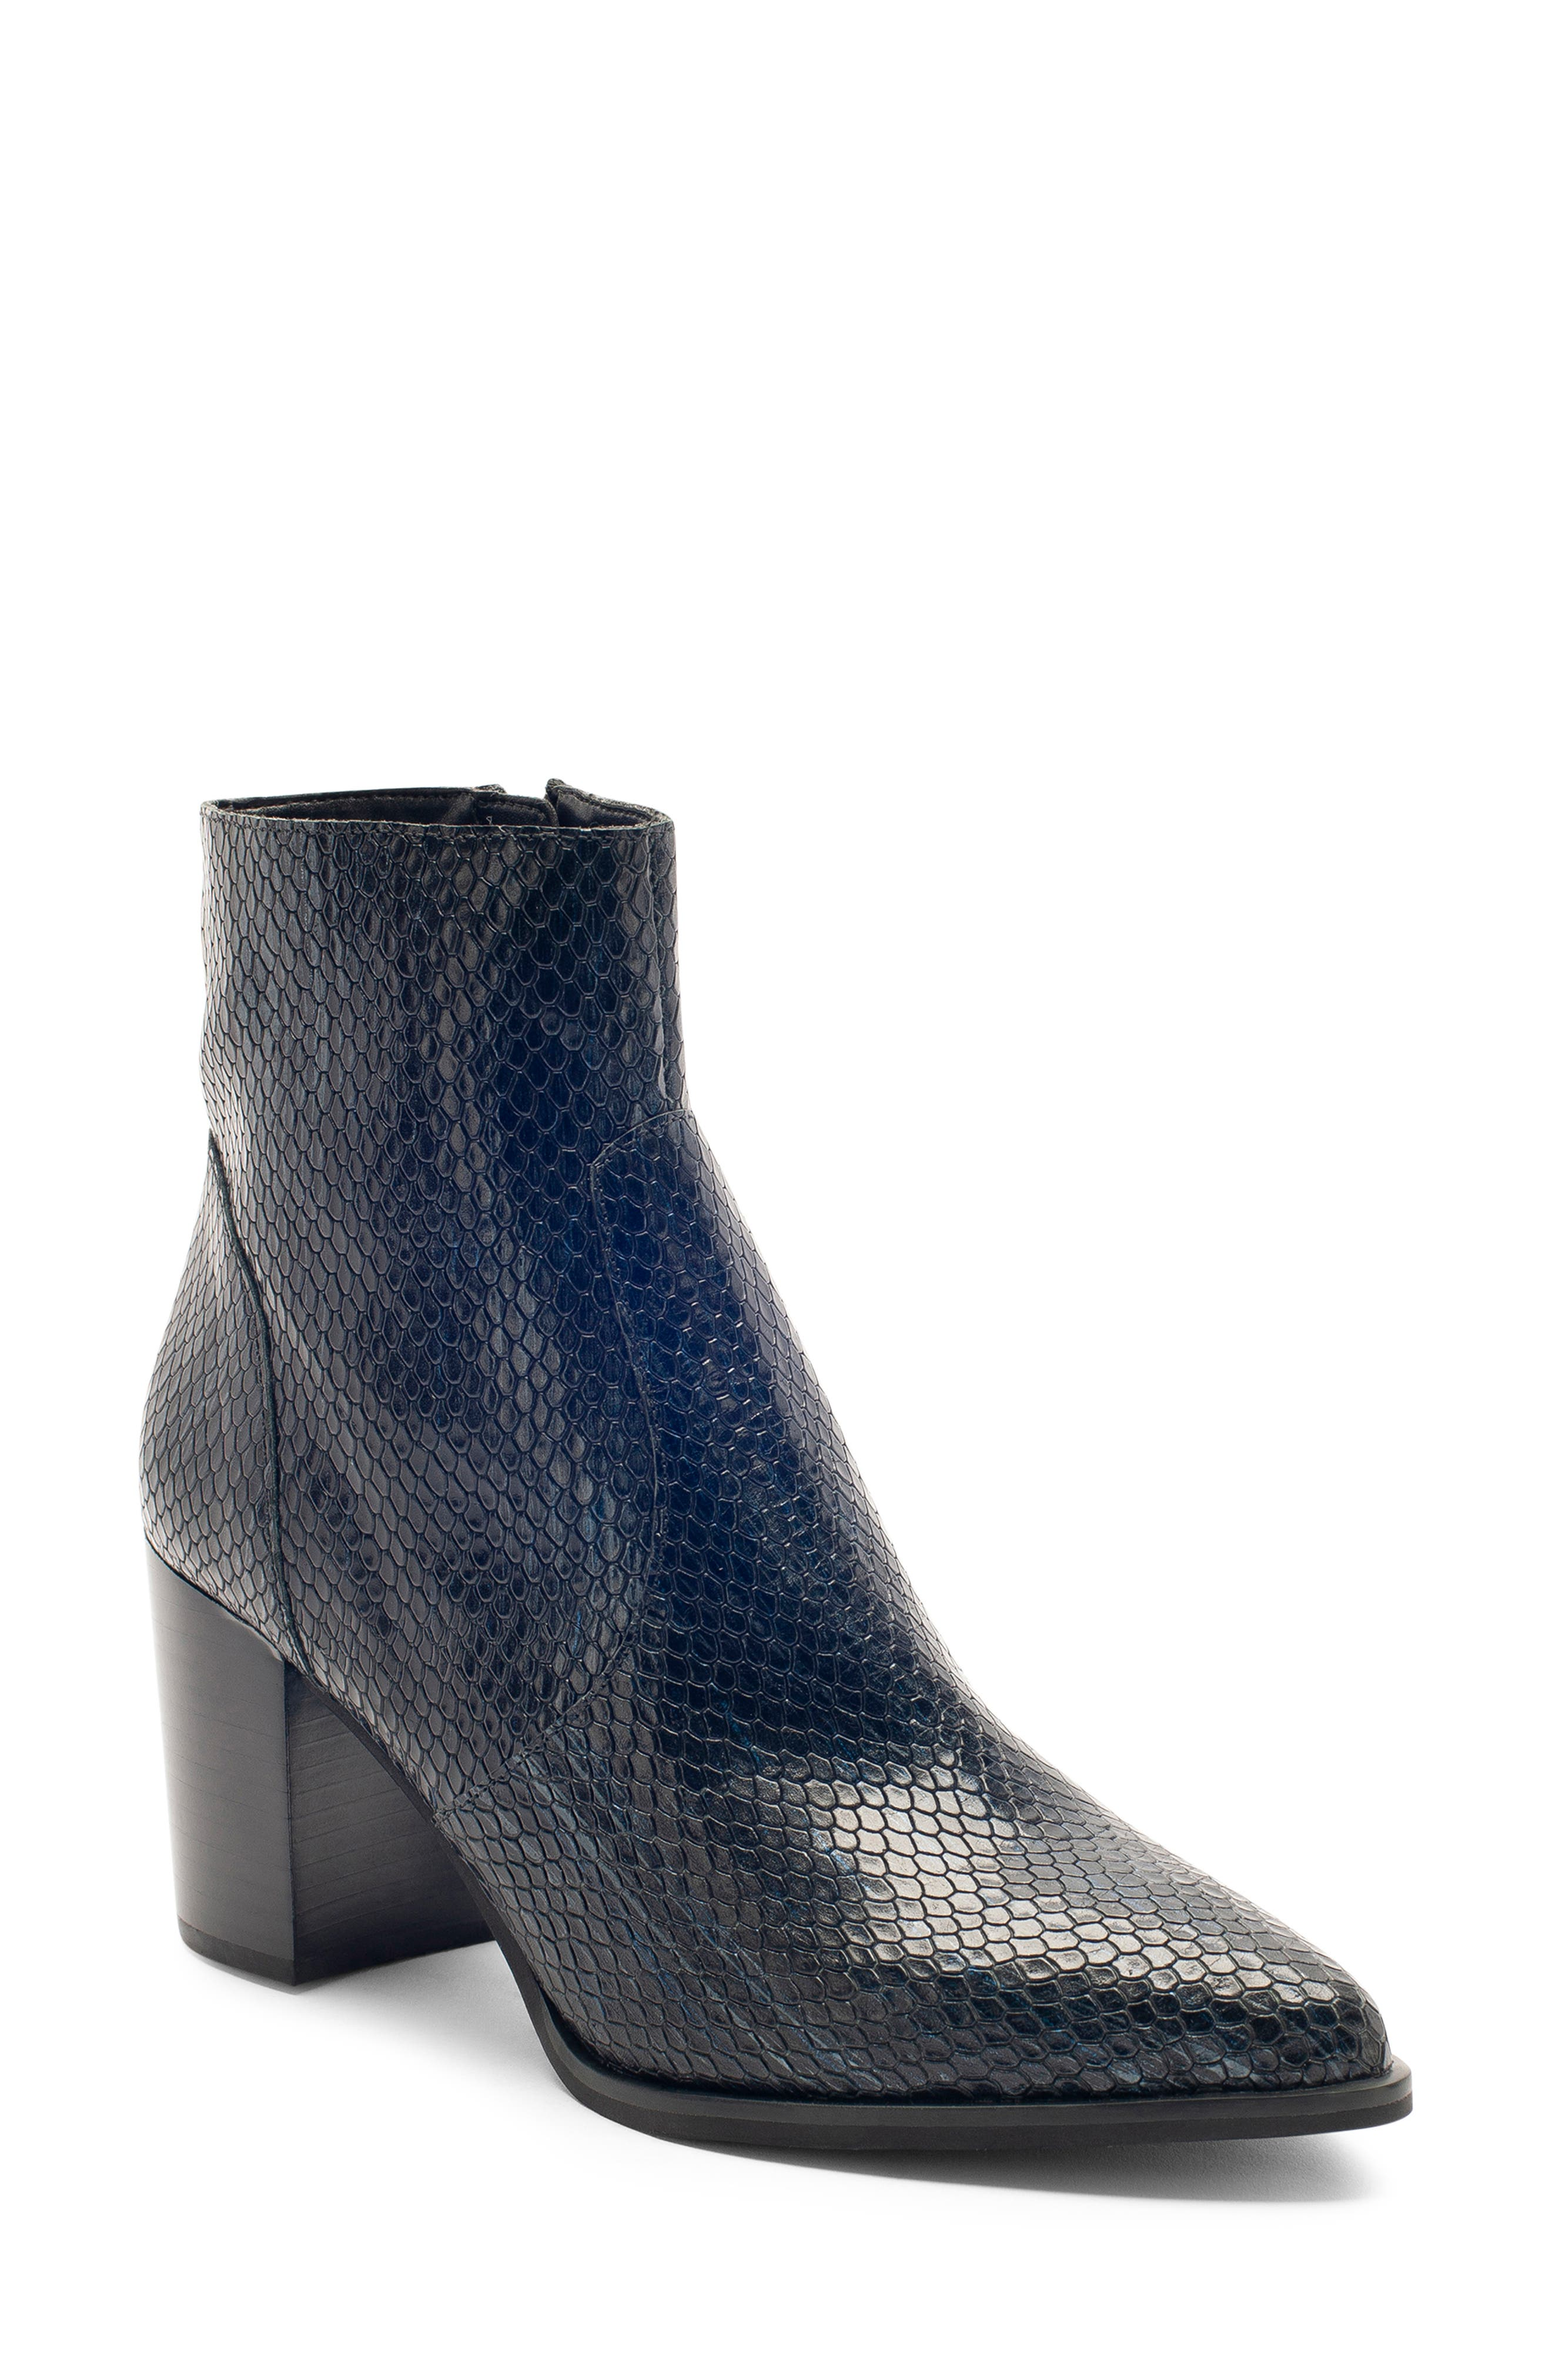 Tania Waterproof Bootie,                             Main thumbnail 1, color,                             BLACK SNAKE LEATHER